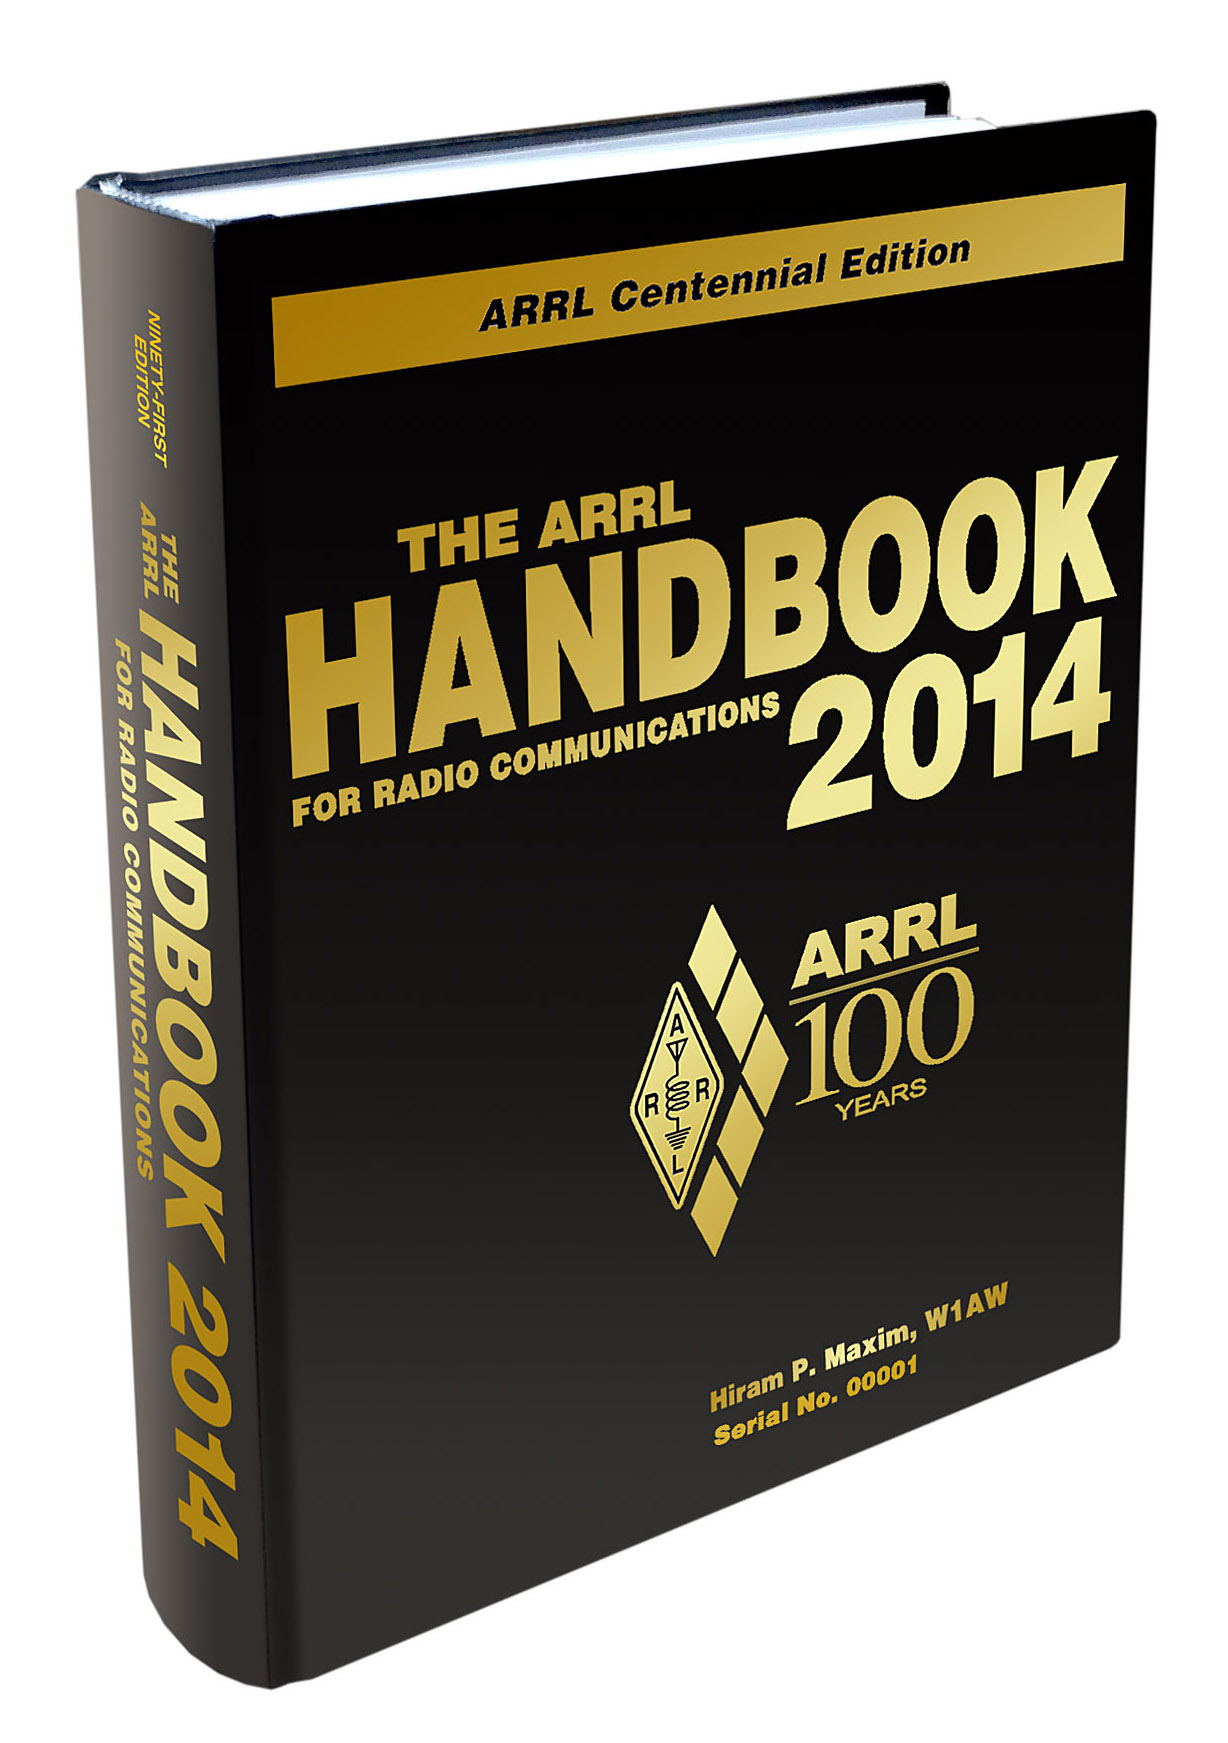 ARRL Now Taking Orders for Personalized Hardcover 2014 Handbook